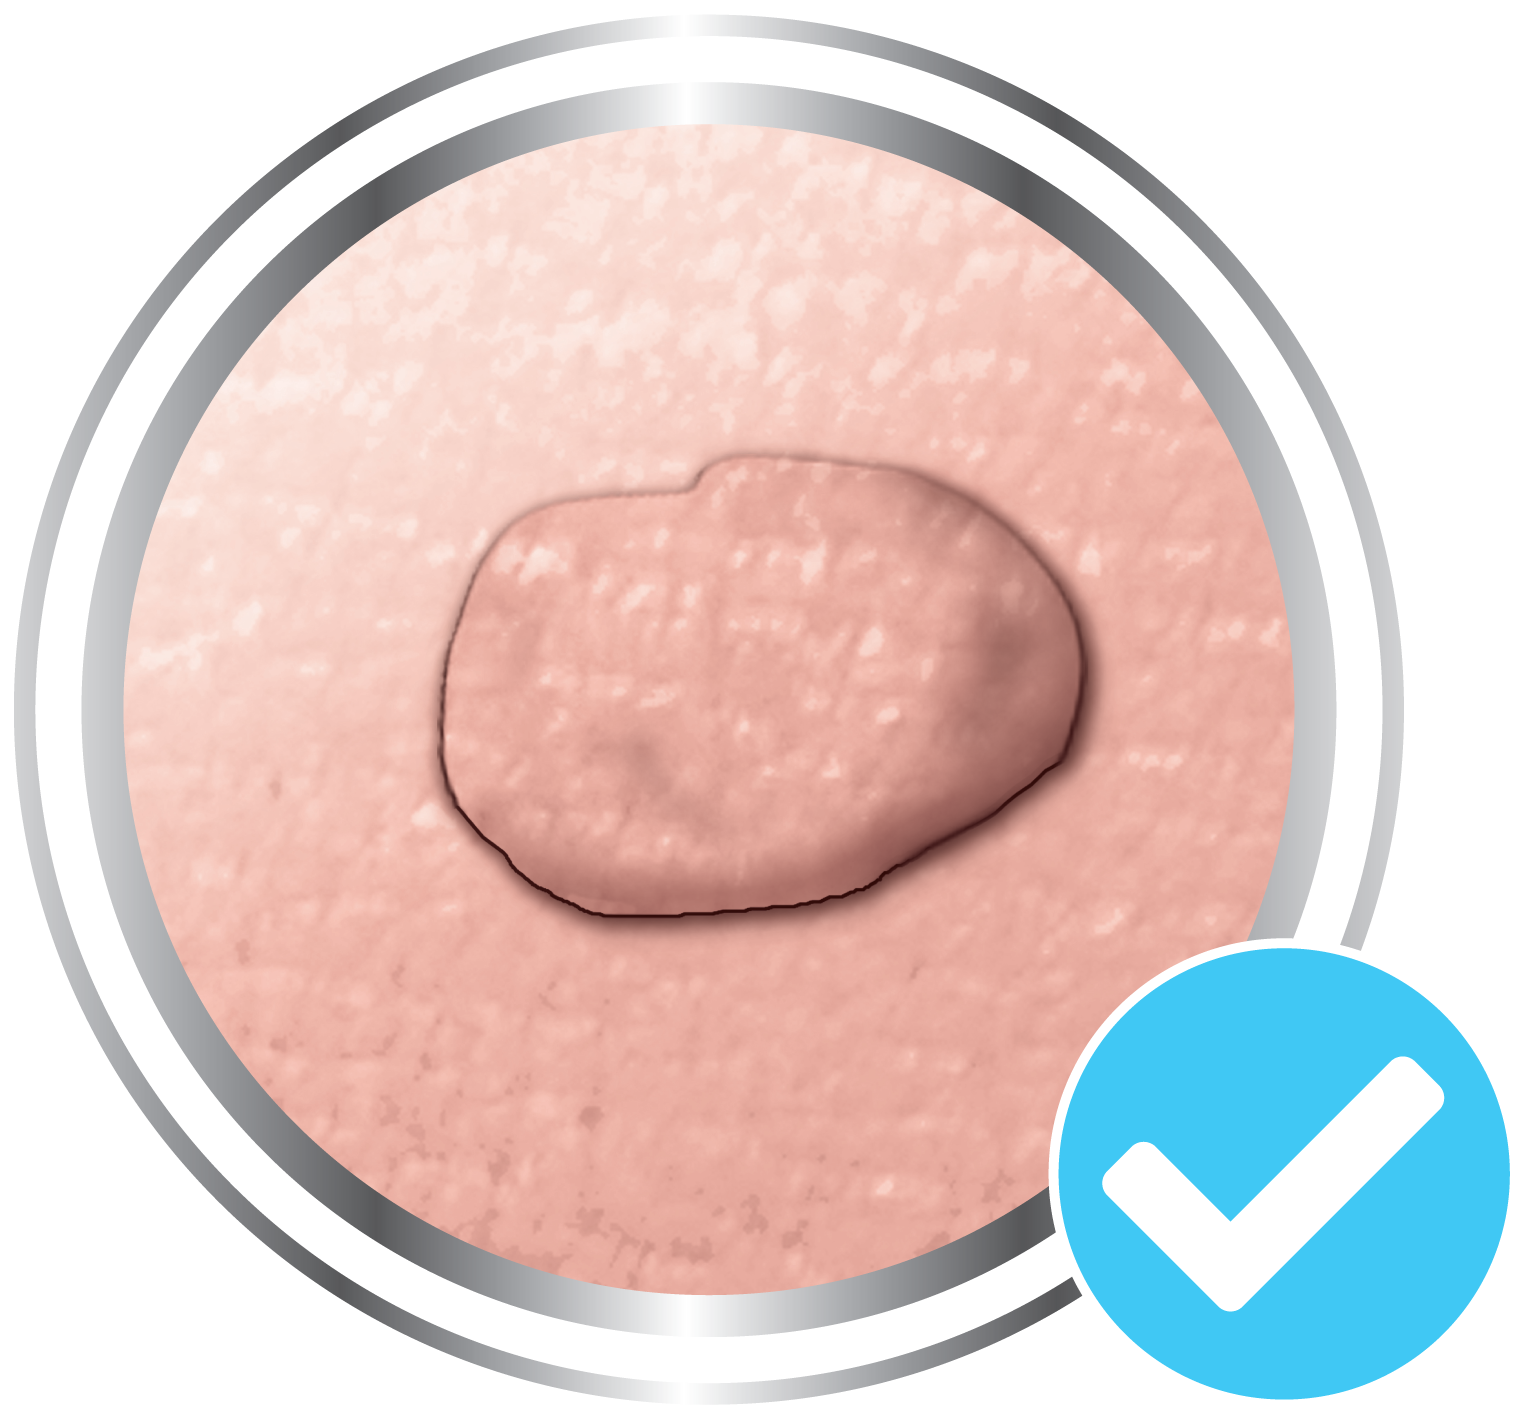 Skin tag is the same colour as surrounding skin